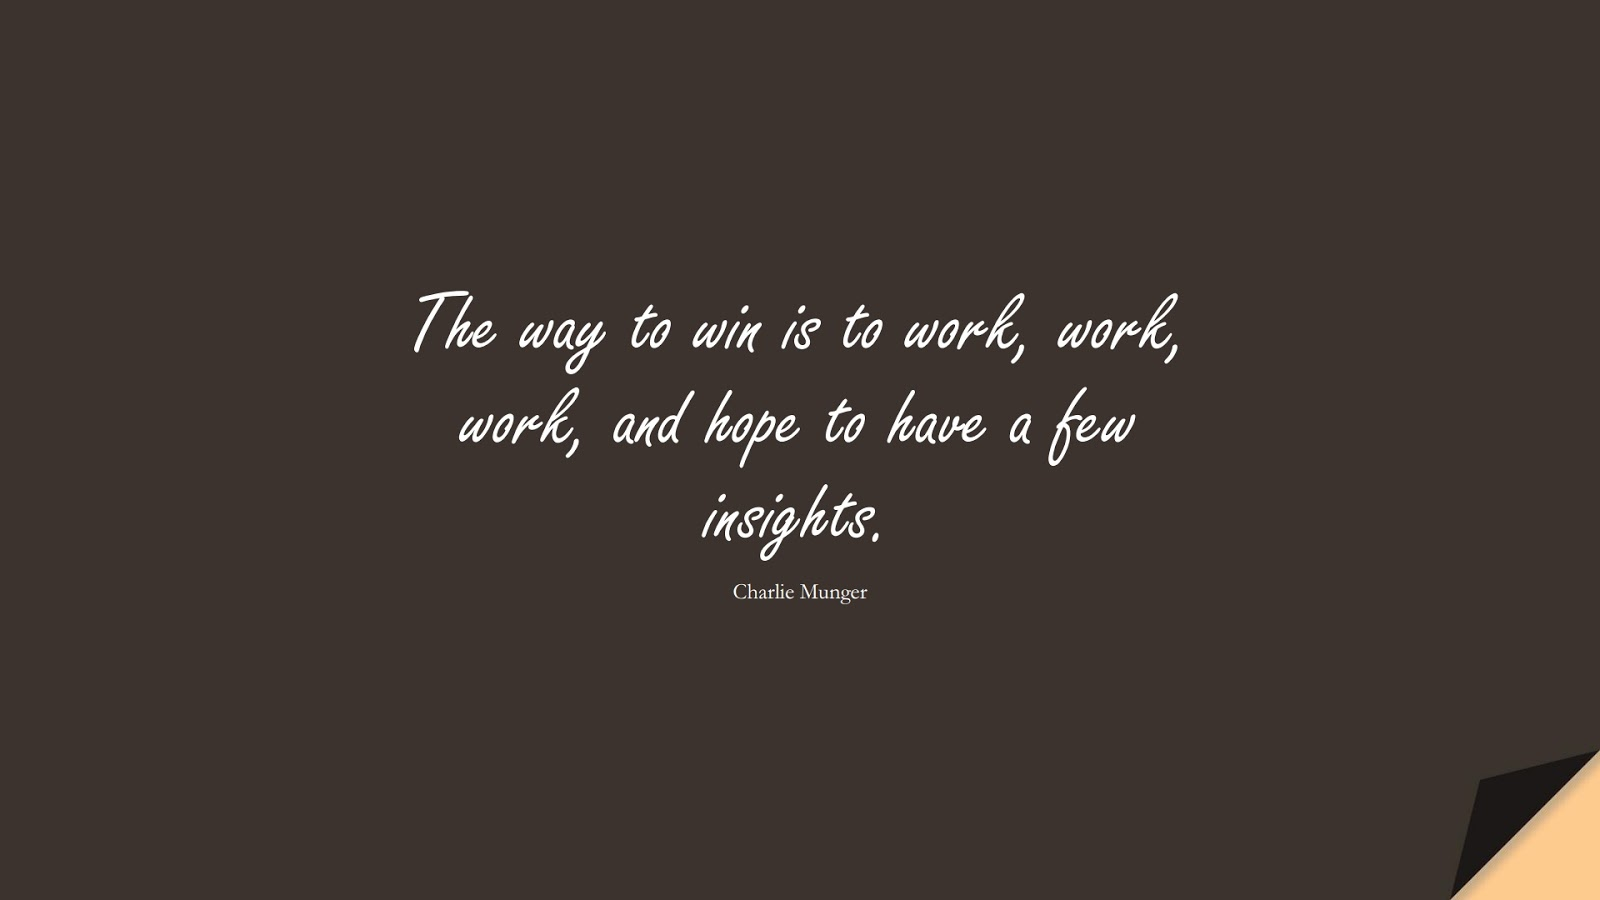 The way to win is to work, work, work, and hope to have a few insights. (Charlie Munger);  #NeverGiveUpQuotes